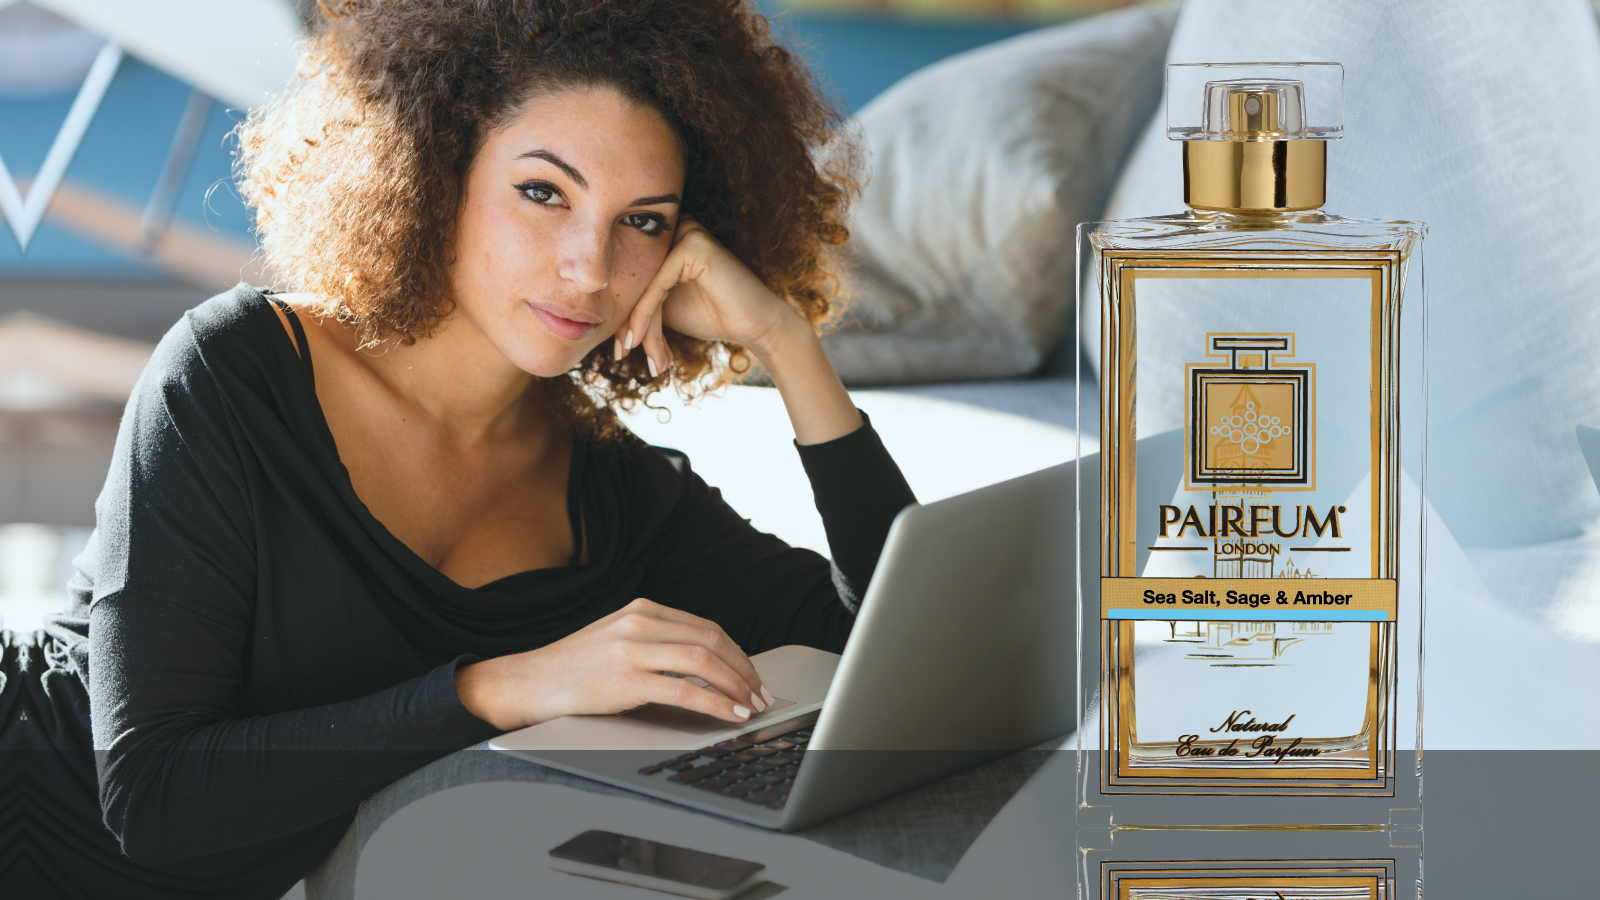 Eau De Parfum Person Reading Sea Salt Sage Amber Woman 16 9